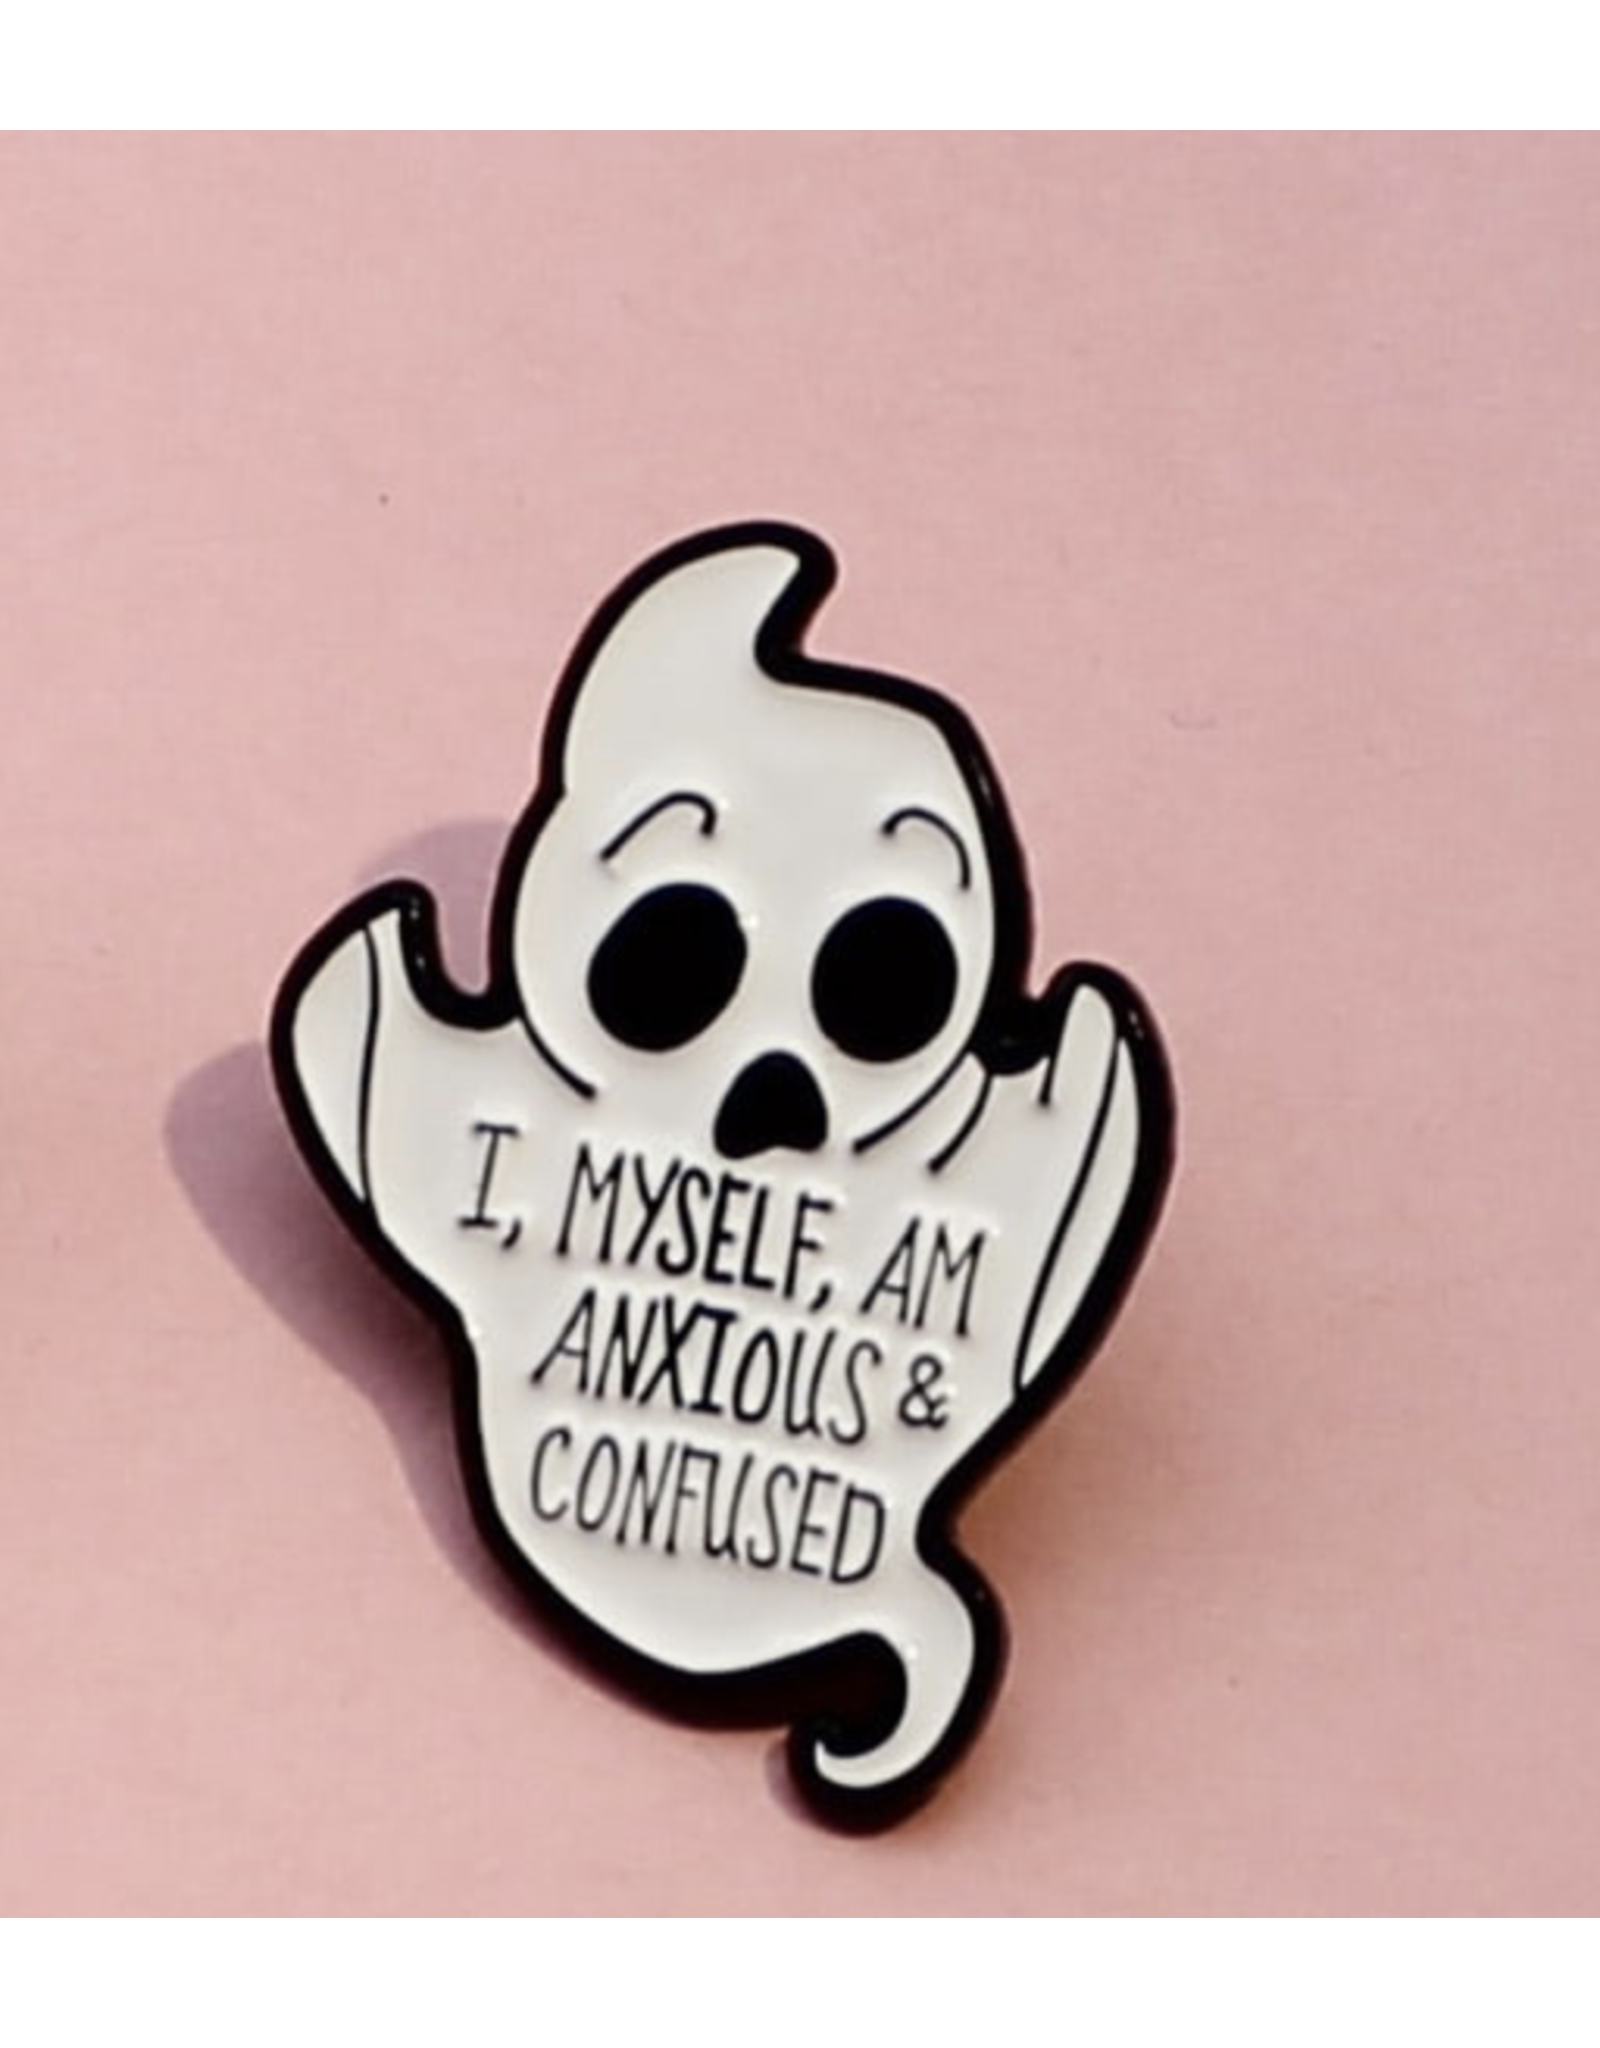 Shein Pin - I Myself Am Anxious & Confused (Ghost)